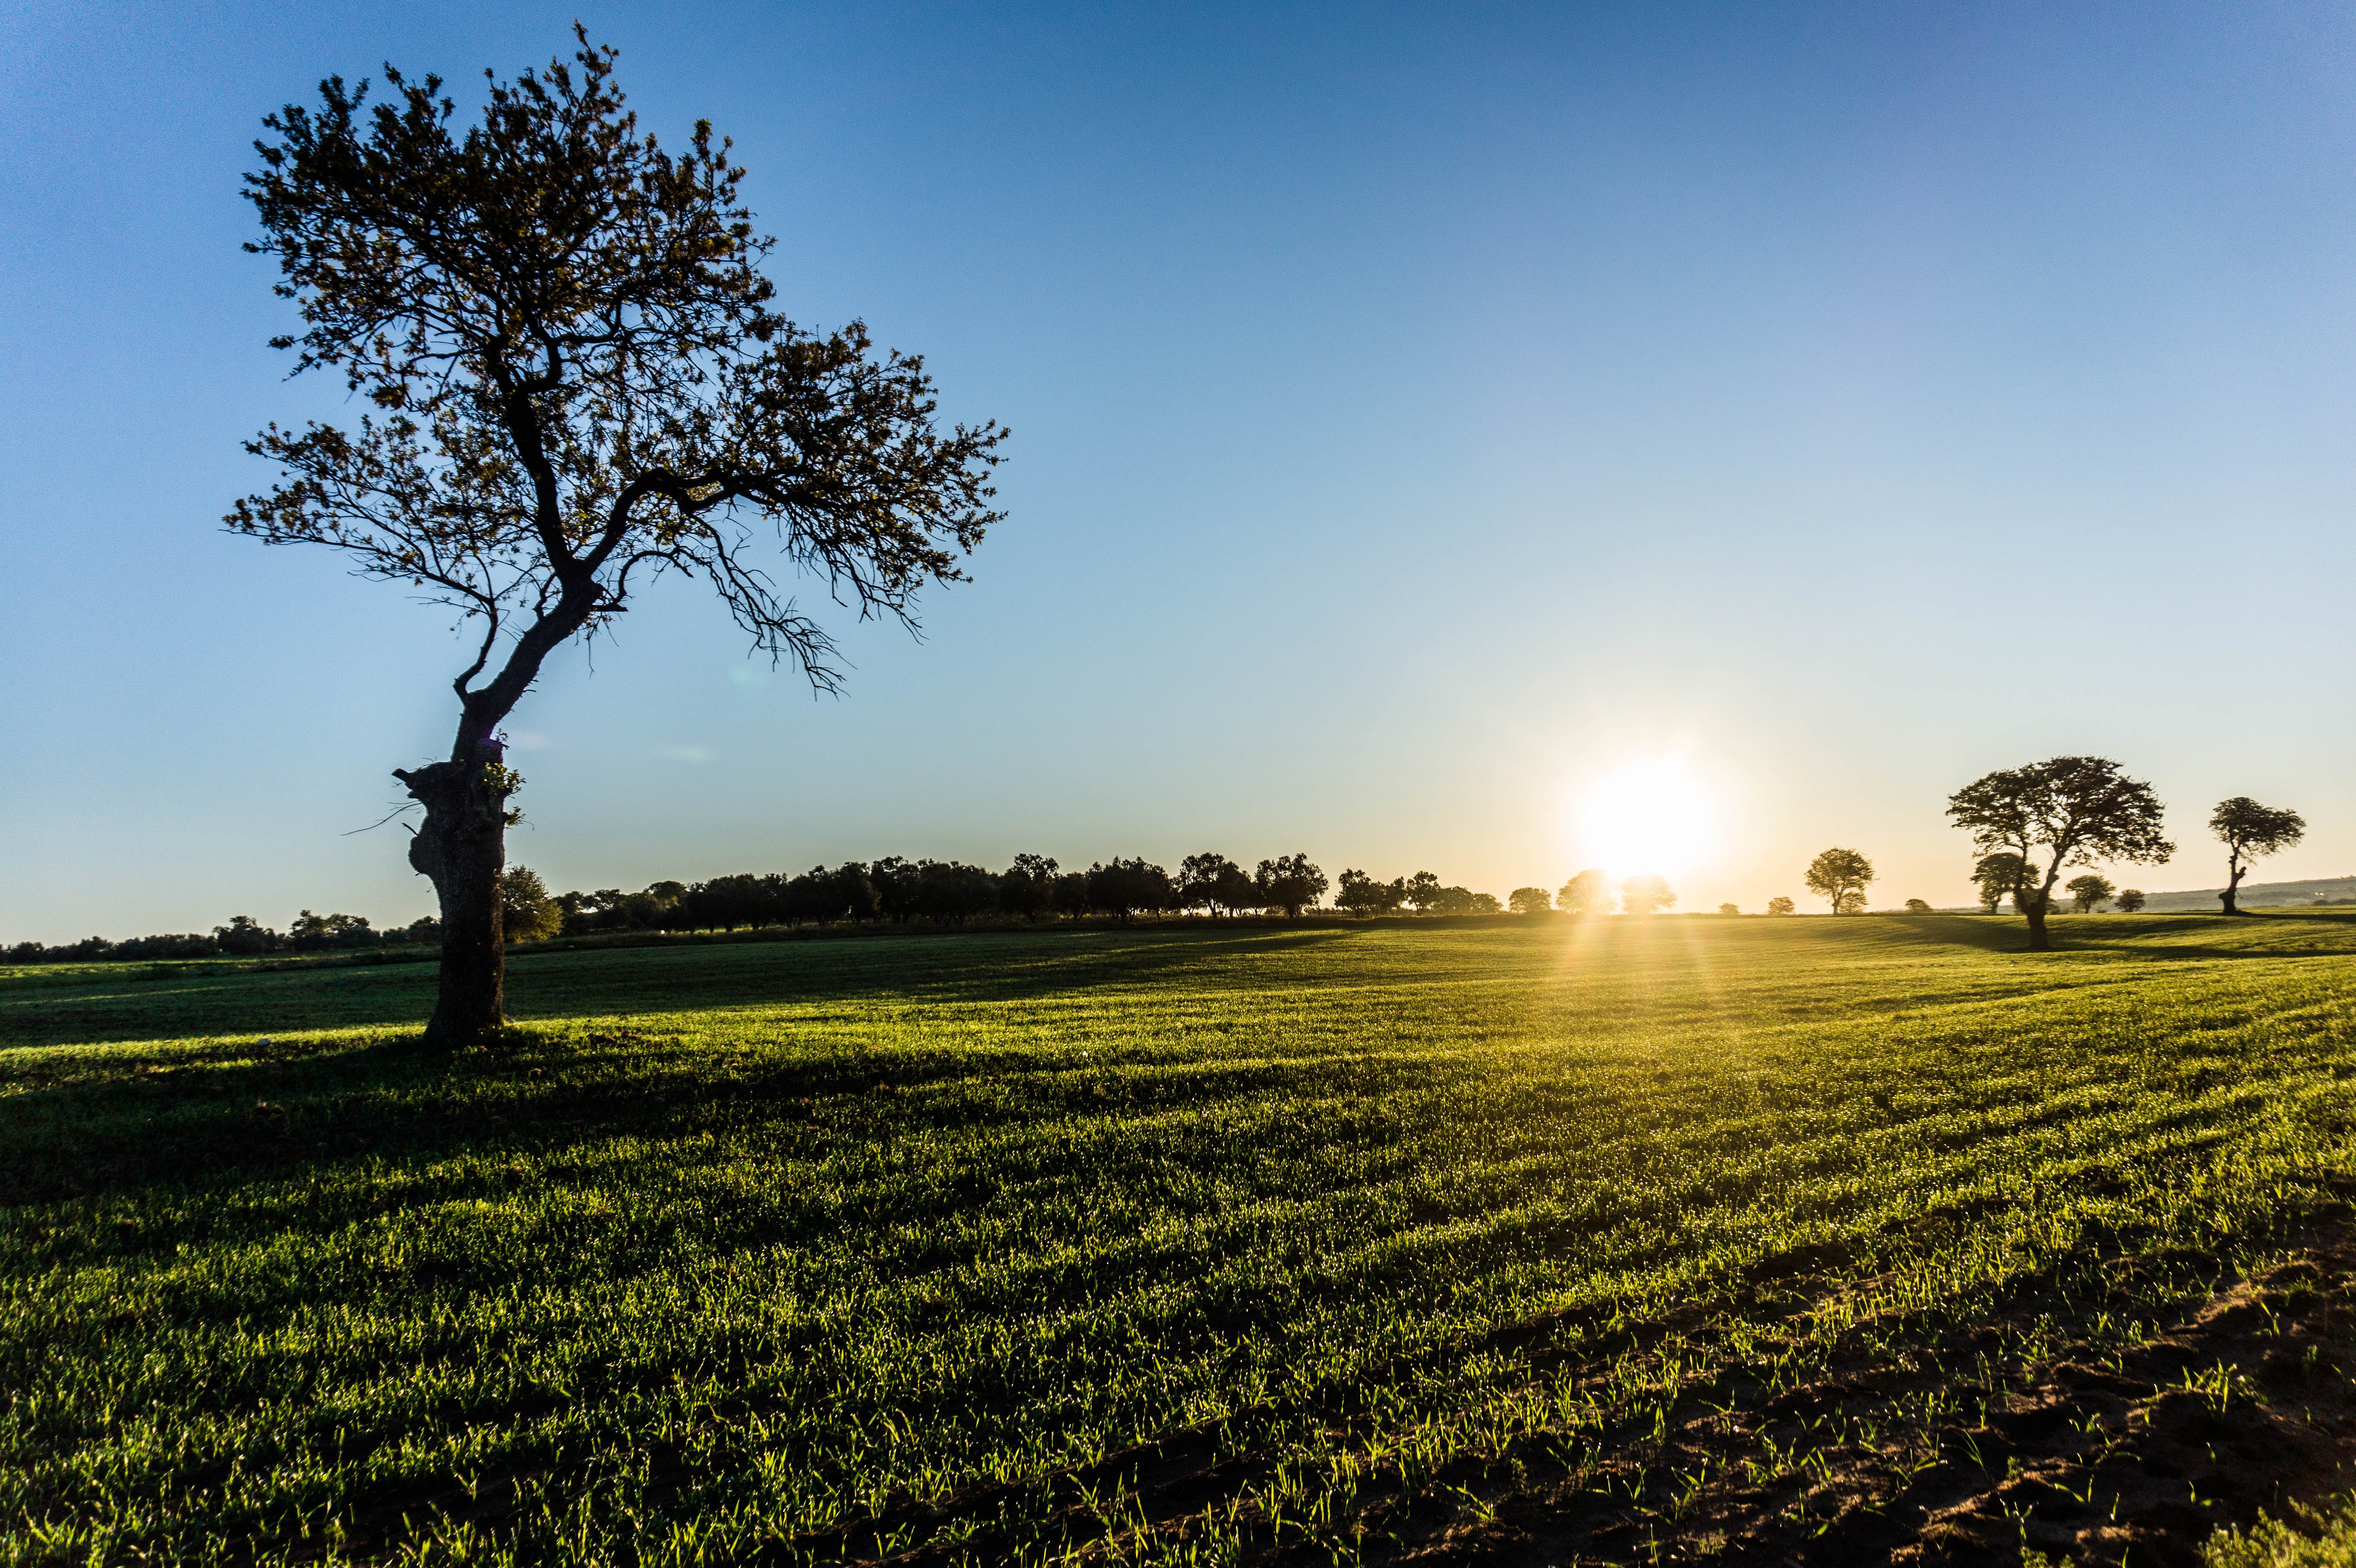 Solitary Tree on Field at Sunrise